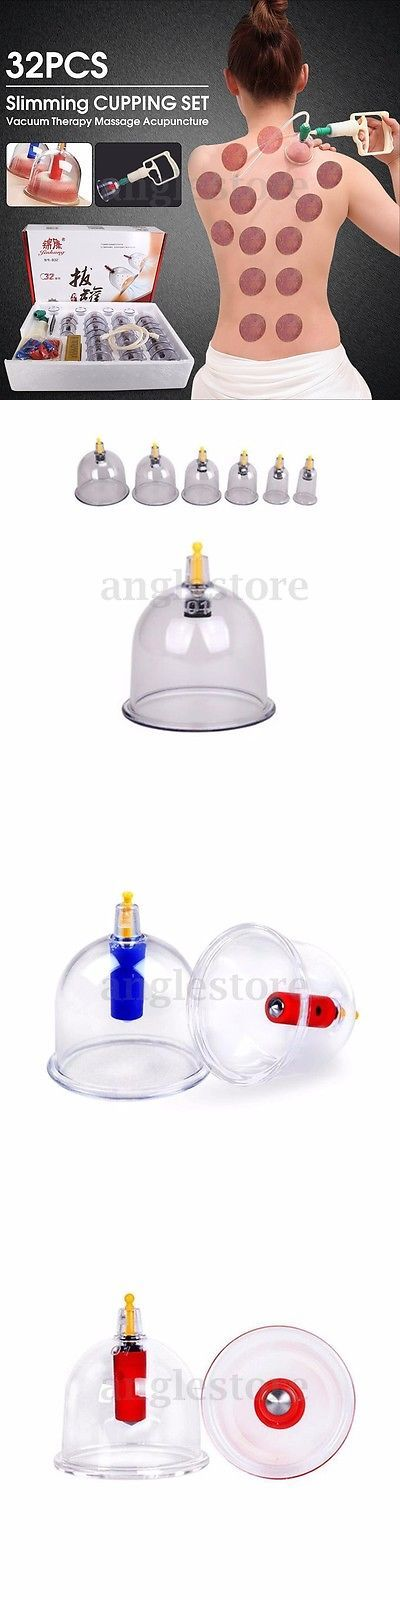 Acupuncture: 32 Cups Medical Chinese Vacuum Body Cupping Massage Therapy Healthy Suction Set -> BUY IT NOW ONLY: $47.99 on eBay!